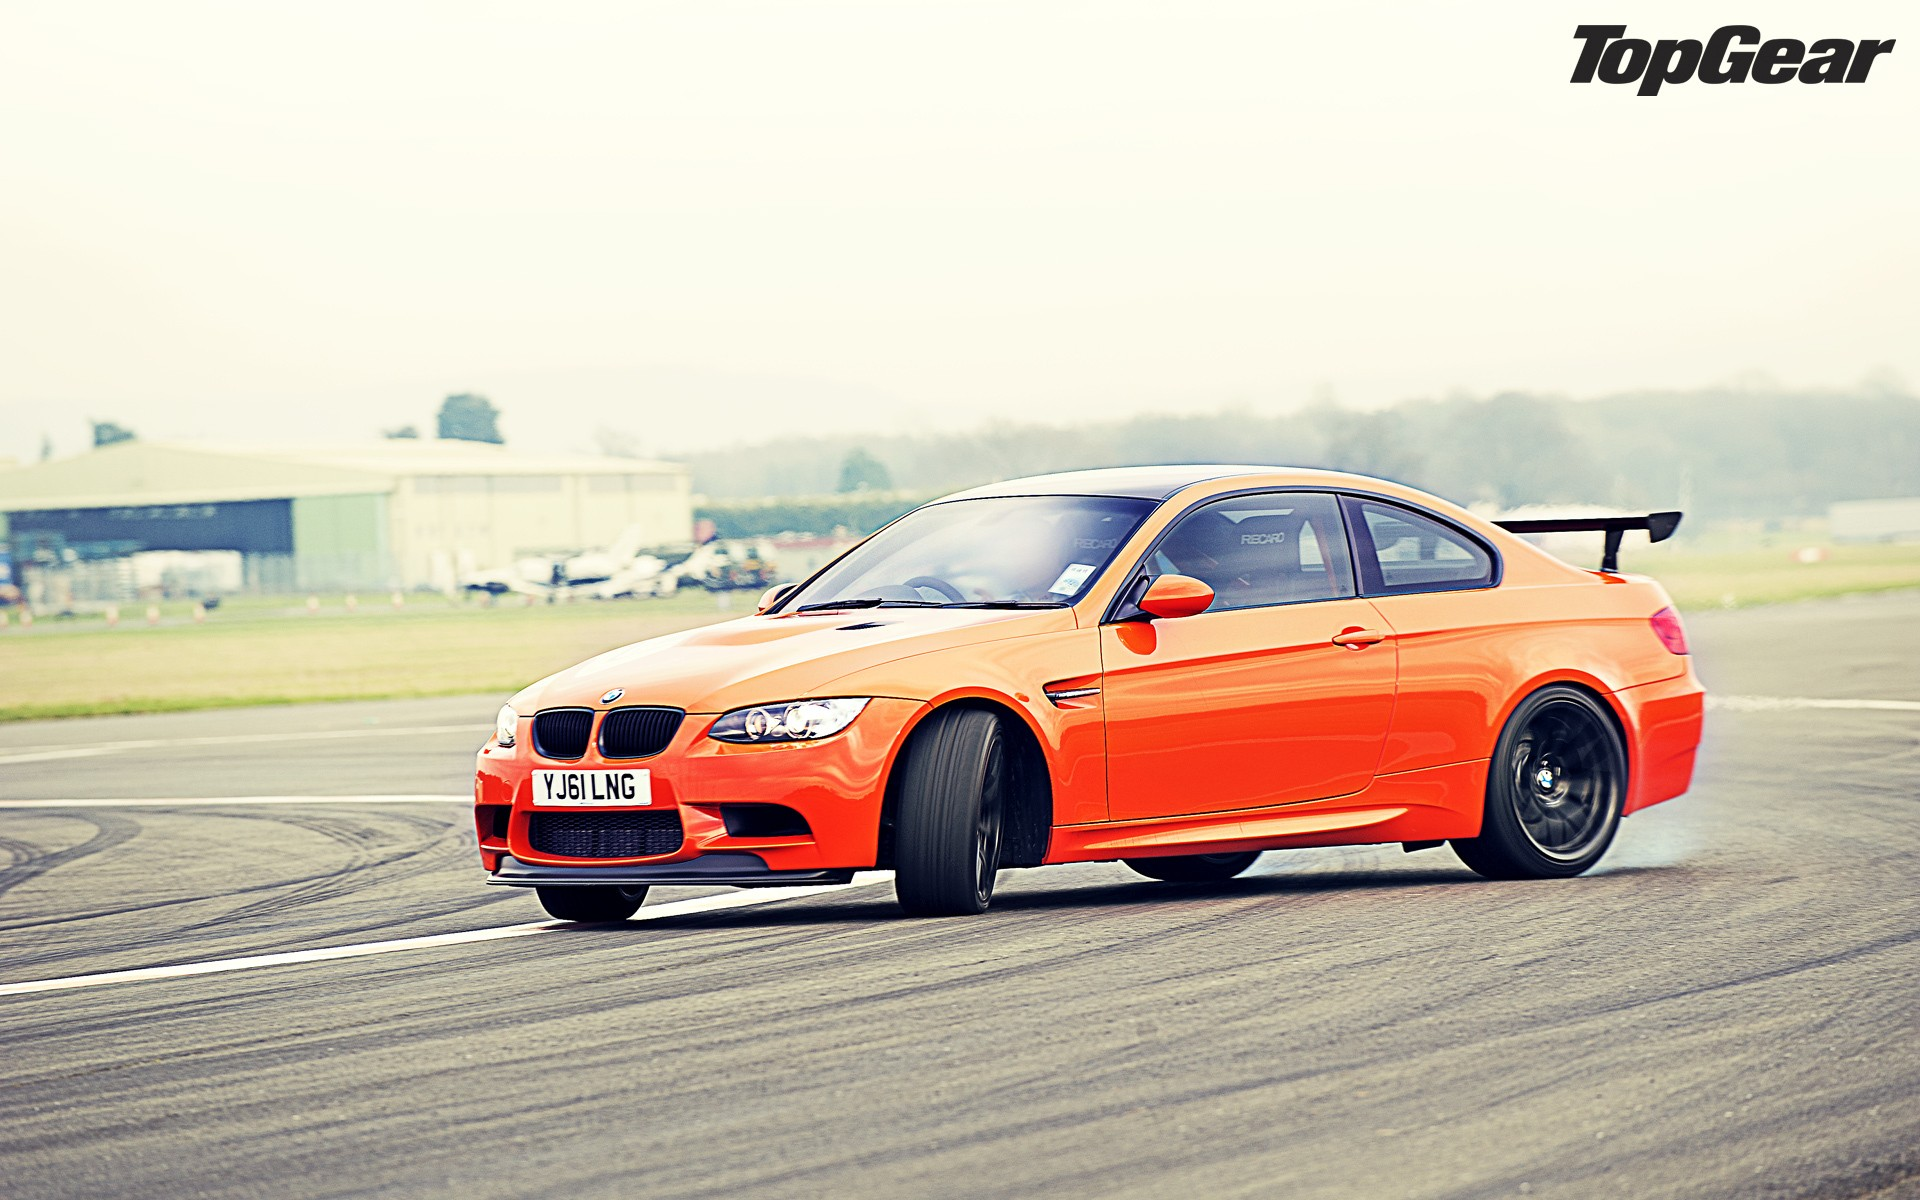 Top gear orange drifting cars track bmw m3 bmw m3 gts m3 gts